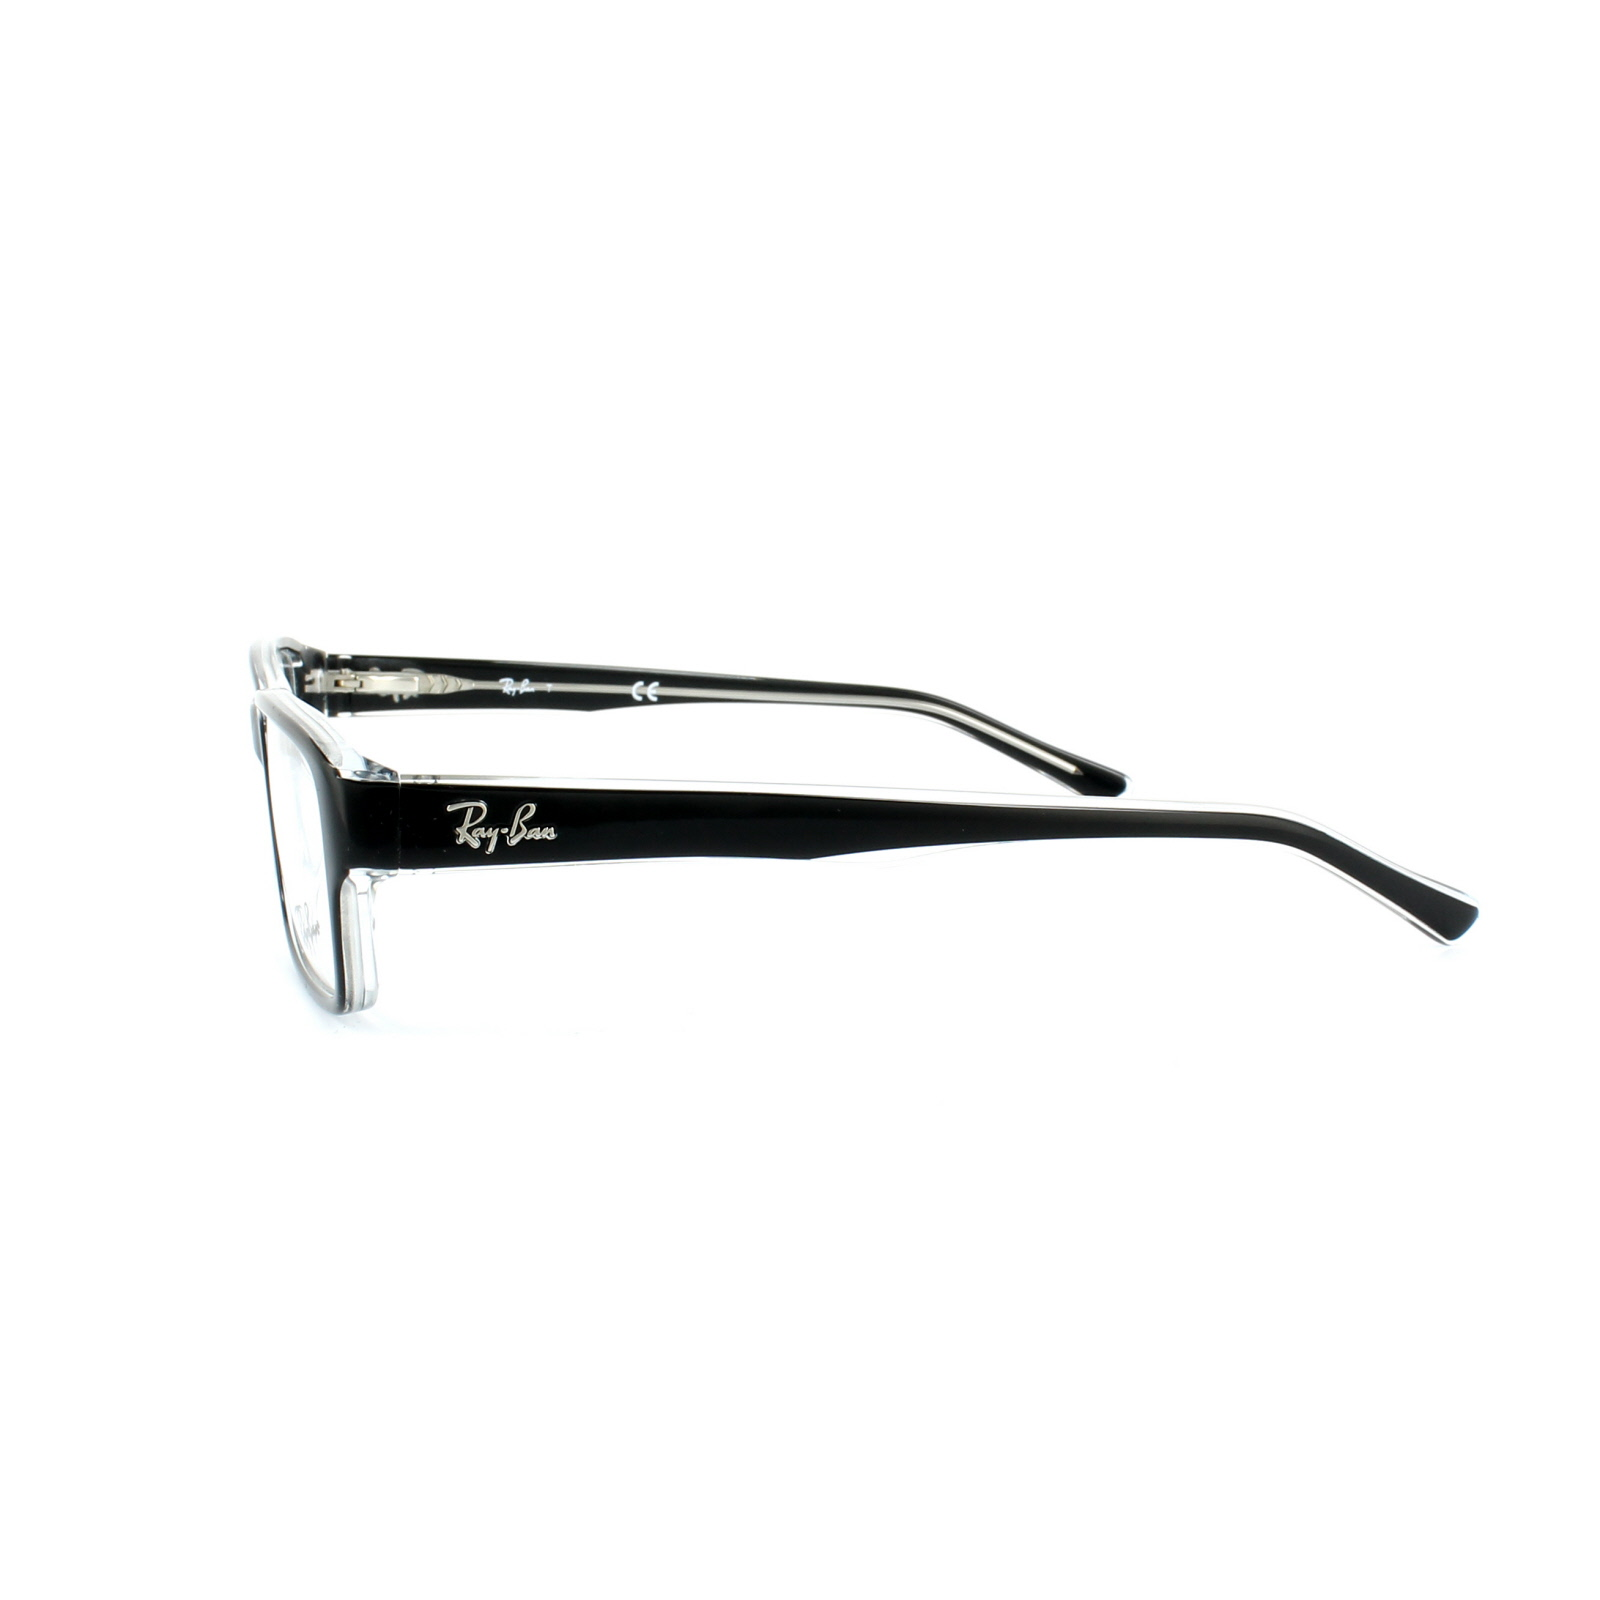 2e84cd3aa0 Details about Ray-Ban Glasses Frames 5169 2034 Top Black On Transparent 54mm